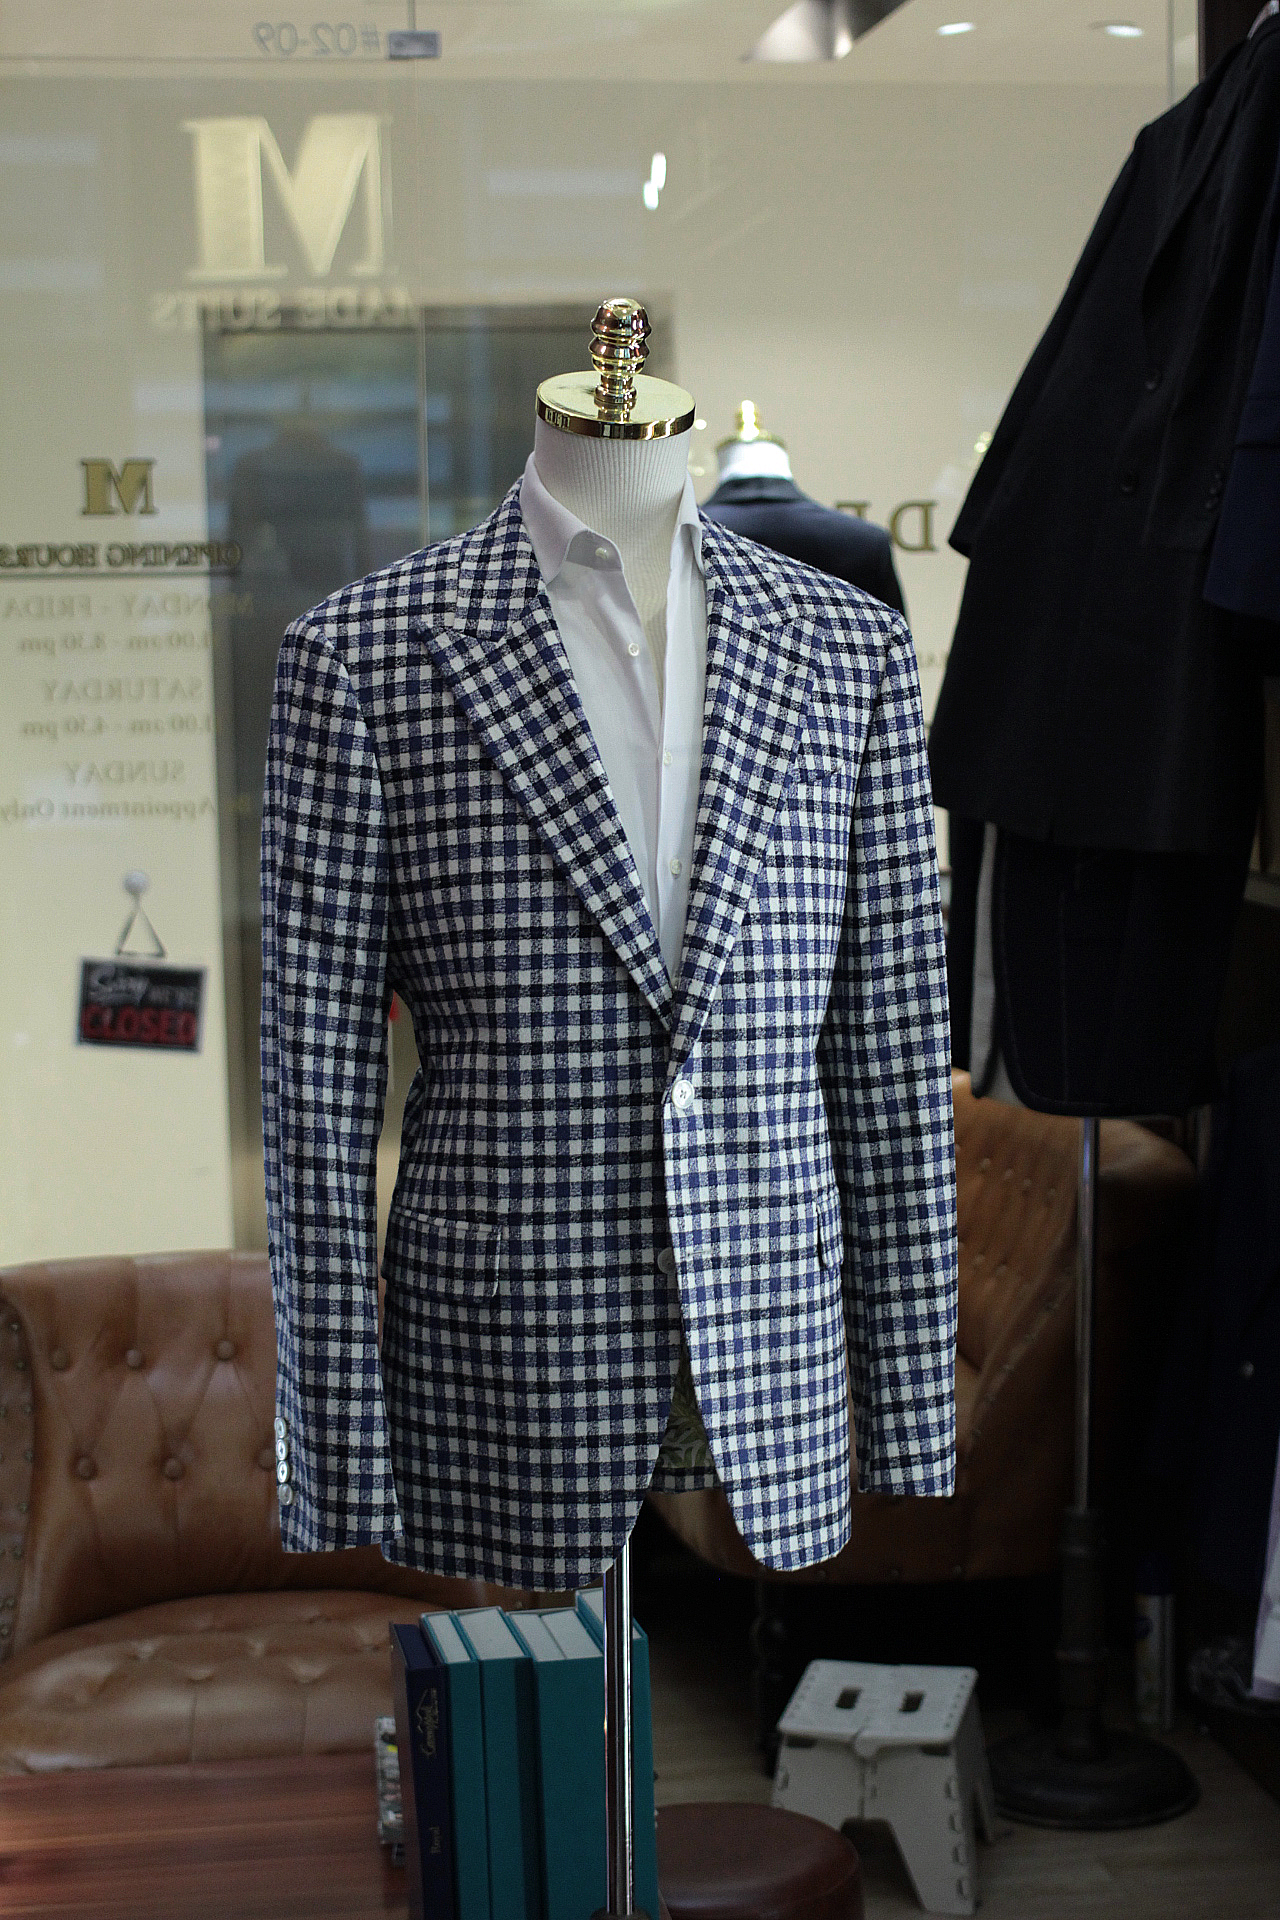 Ribbon | MARZONI | Tailor Made Suits | Made Suits Singapore | Blazer | Checks Single Breasted Suit side view.JPG